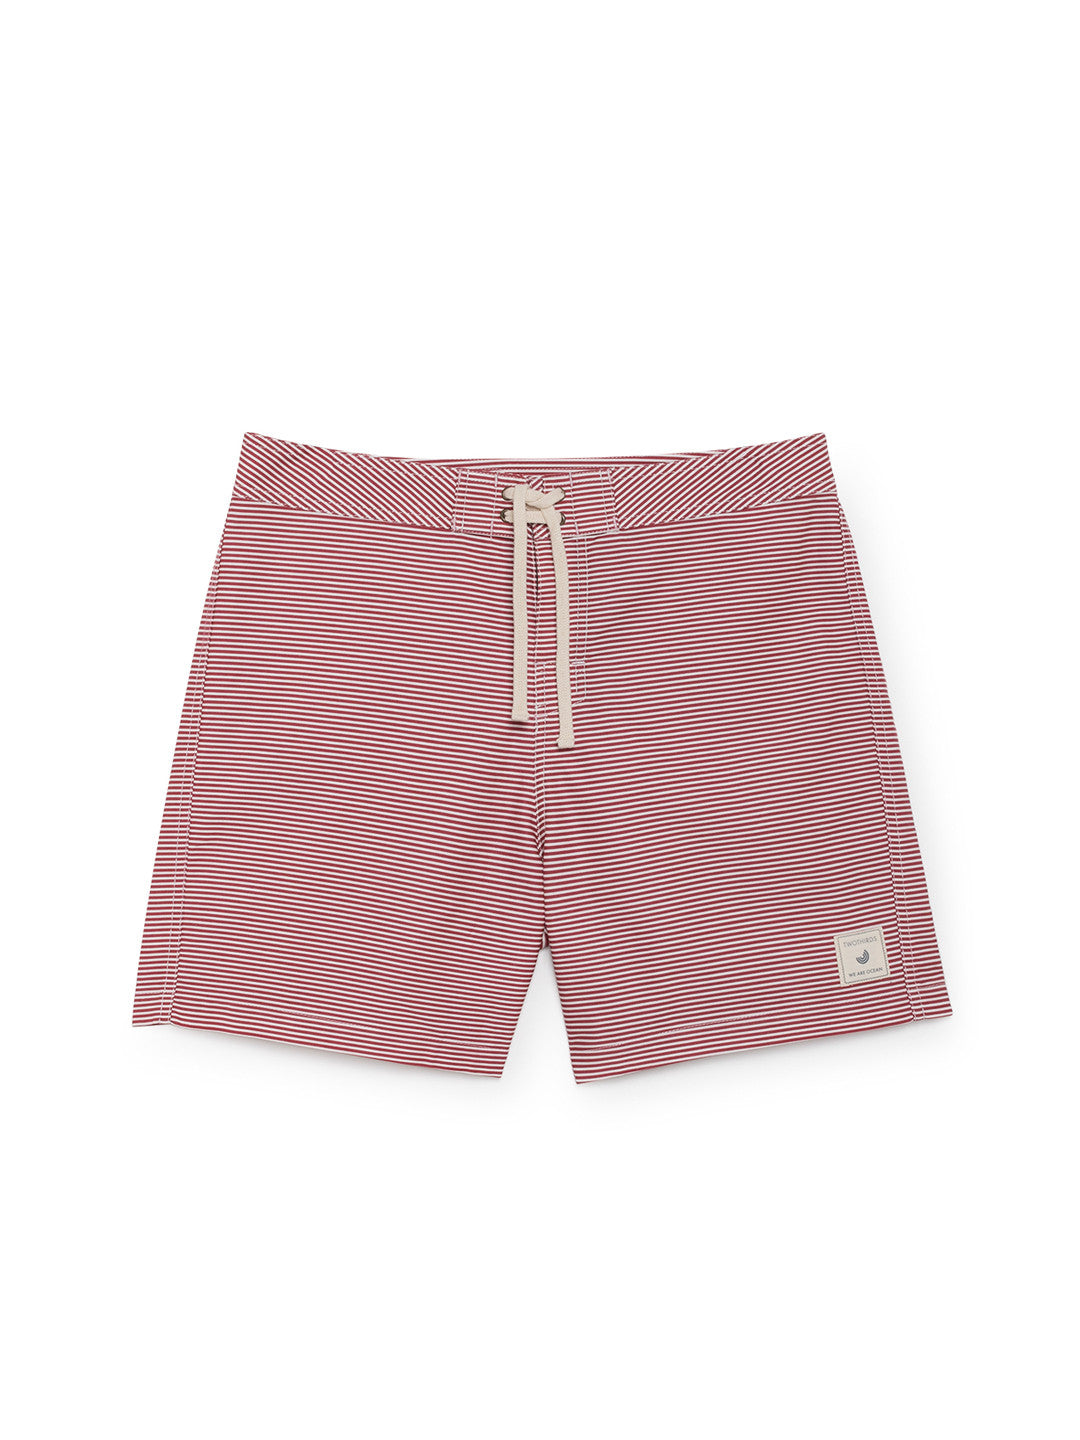 6dd8fe8bd9 We never really liked the plastic feel of polyester boardshorts on our  skin. That is why we developed a special quick dry fabric made from 100%  Organic ...